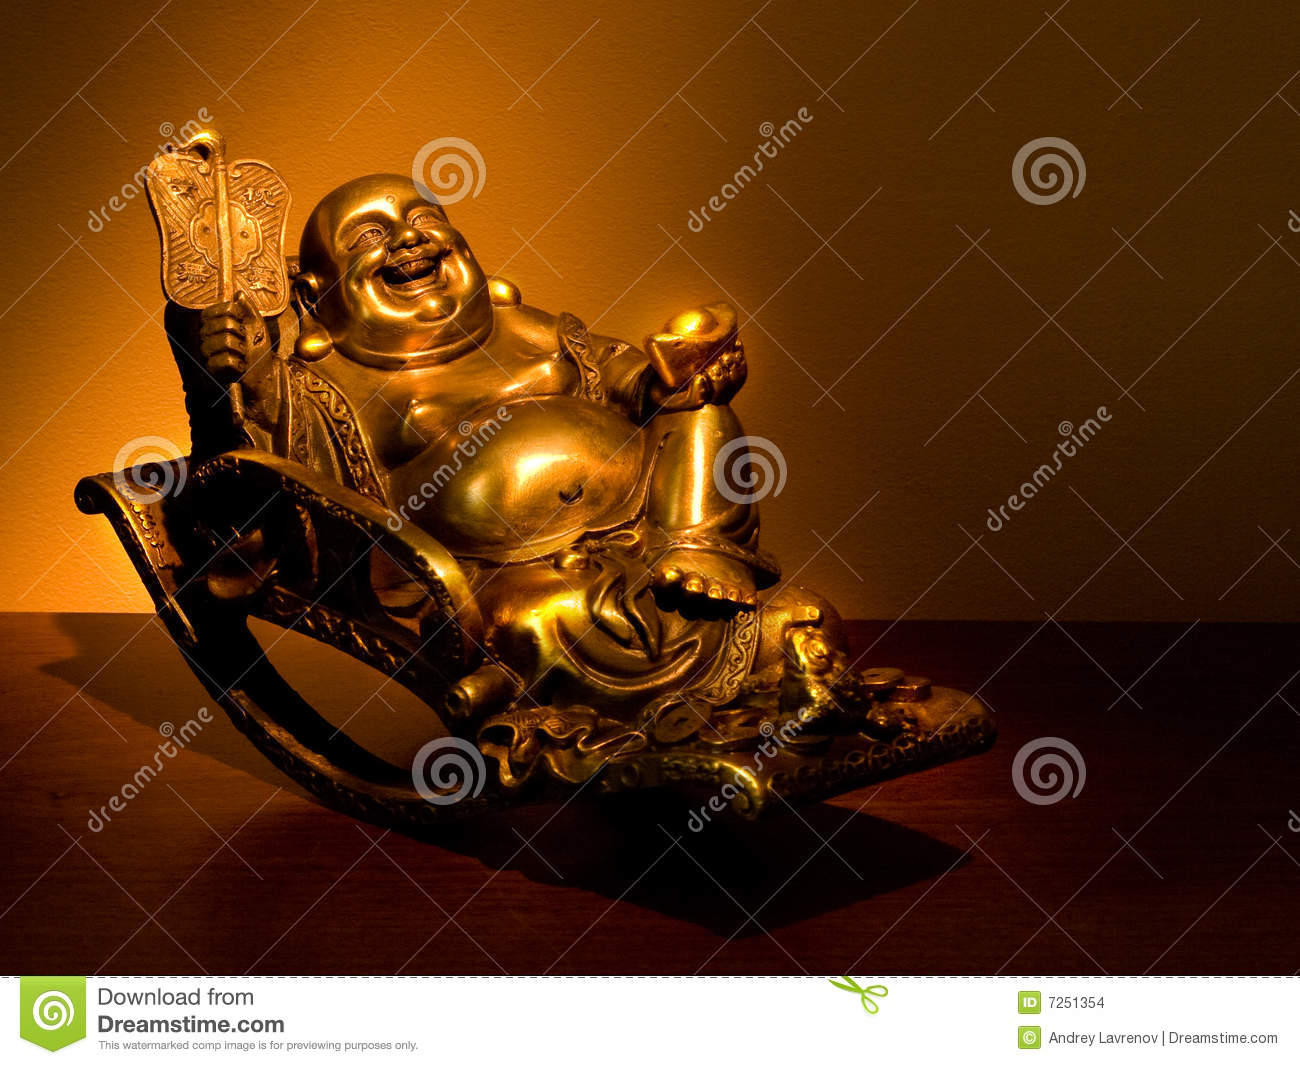 Gold Hotei seating in the rocking-chair